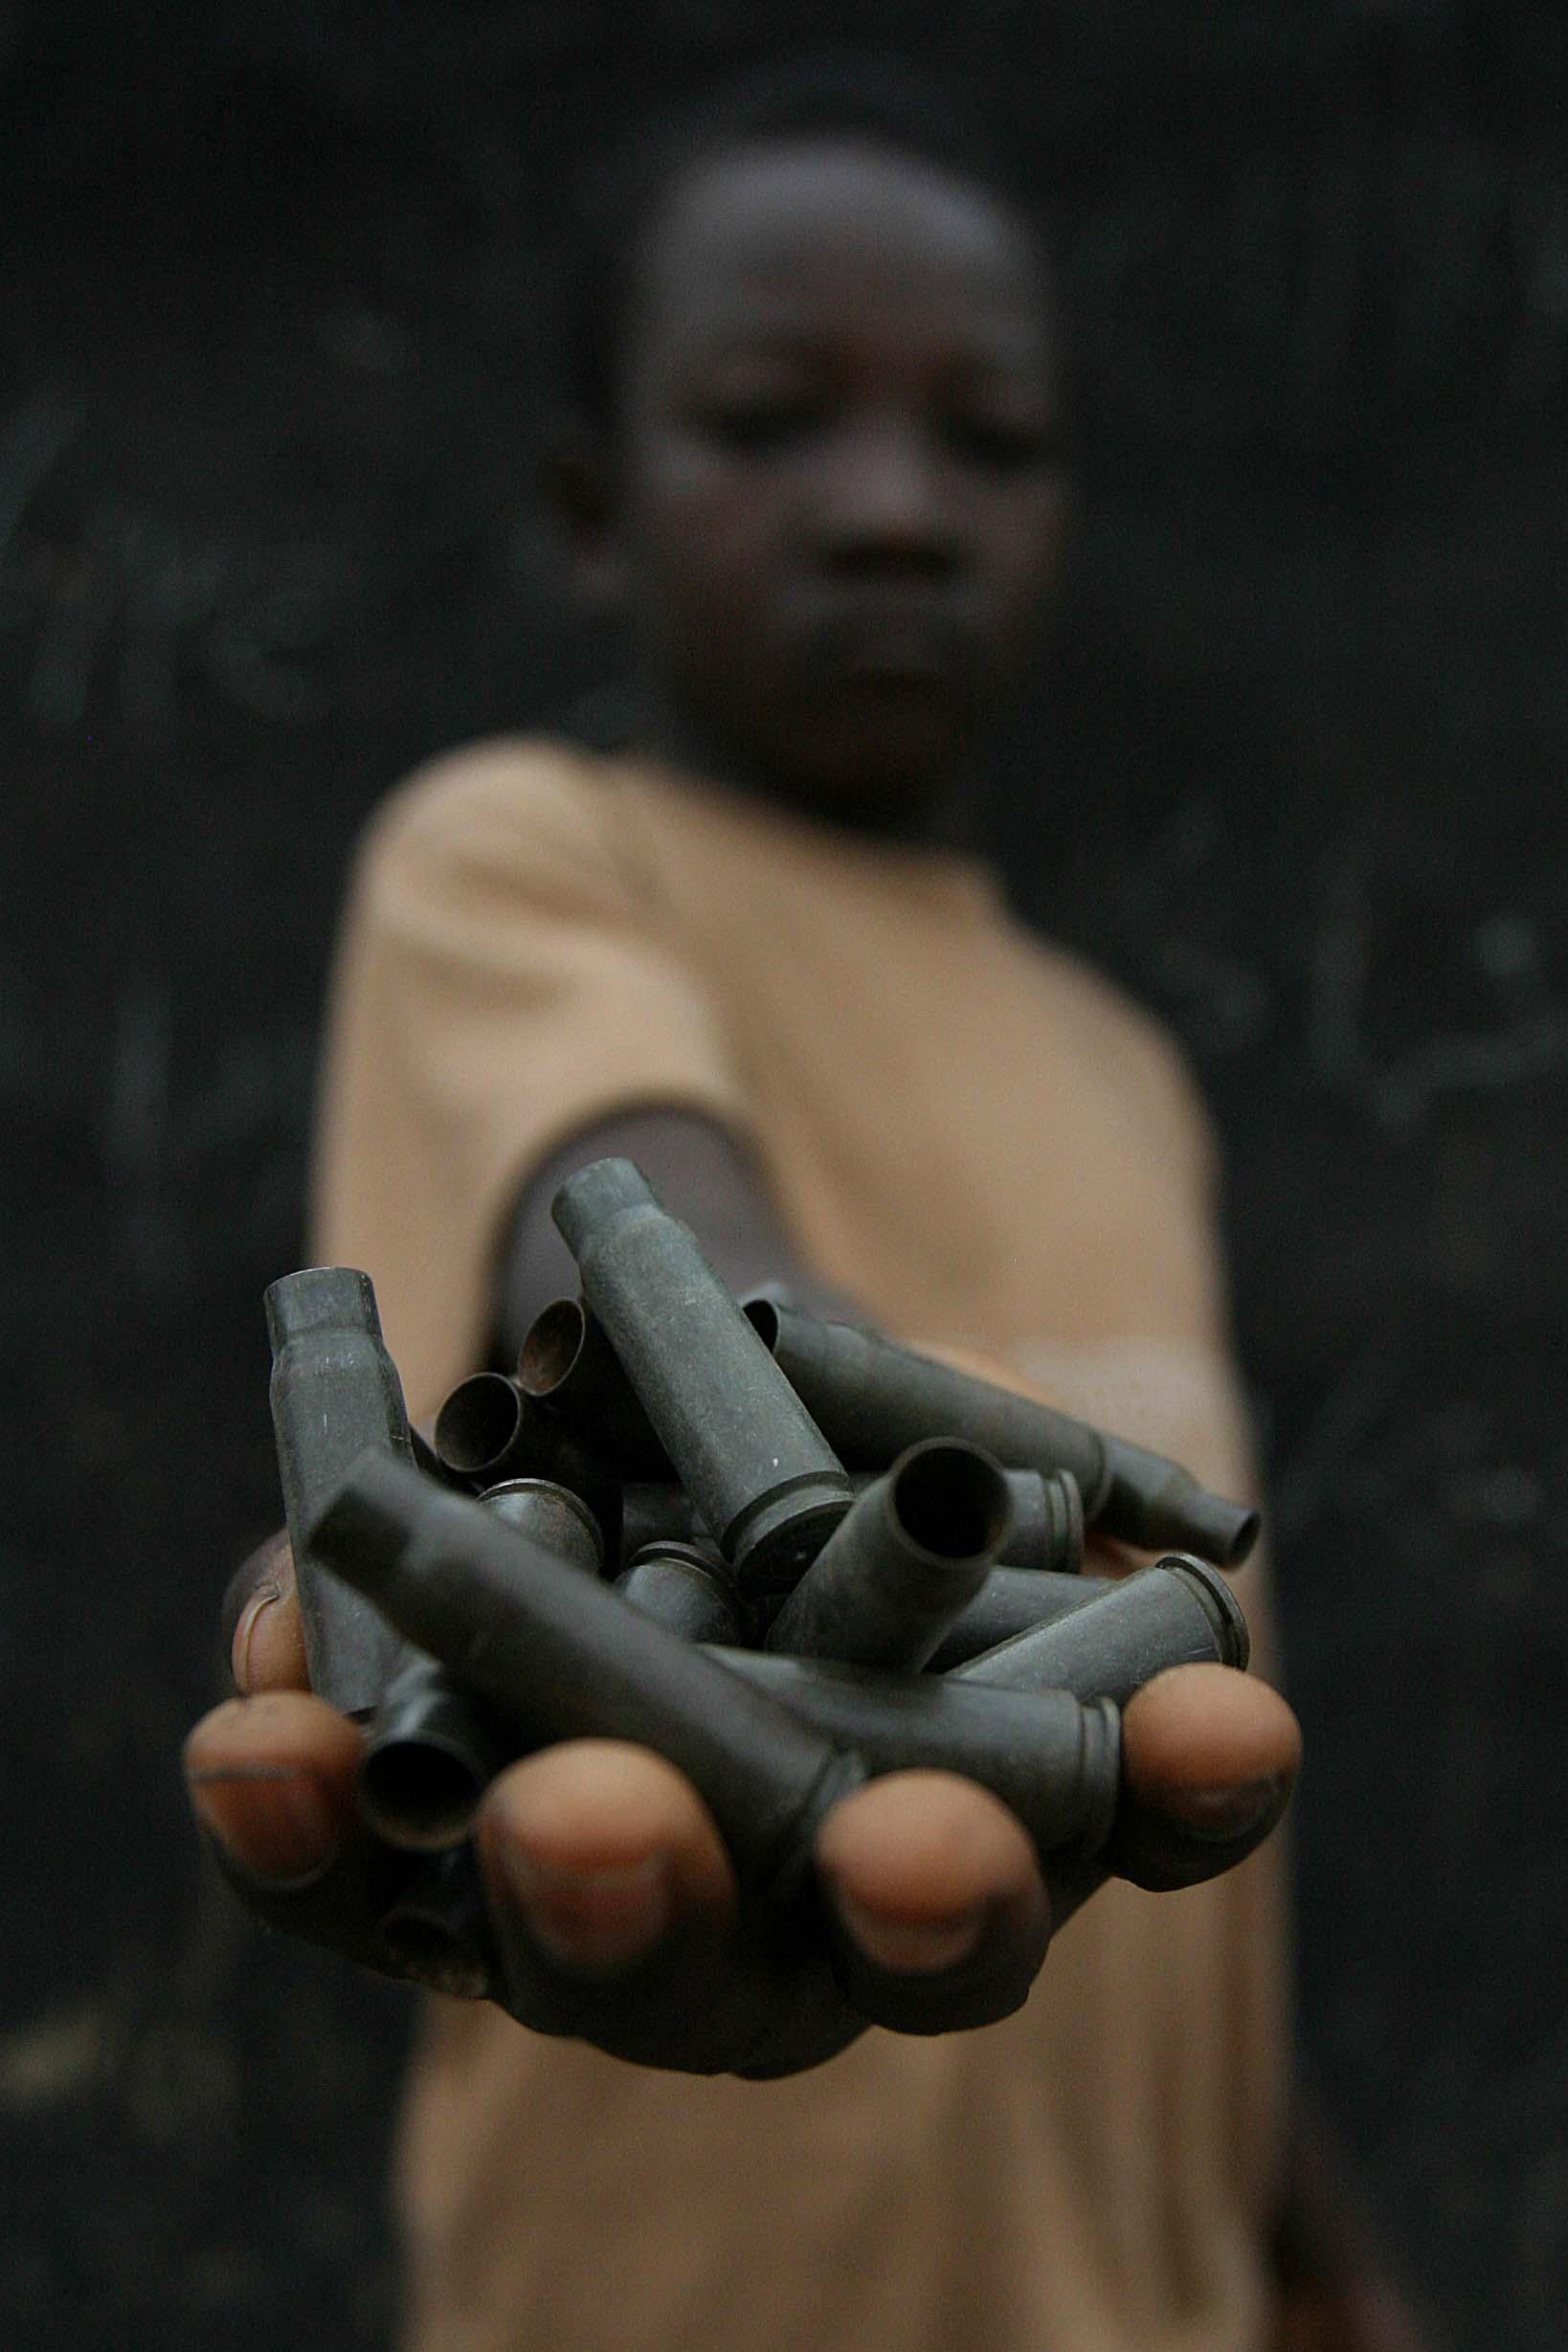 an introduction to the issue of child soldiers in democratic republic of congo Congo, democratic republic of the no advancement 2013 findings on the worst forms of child labor197 the government has established relevant laws and regulations related to child labor (table 4).